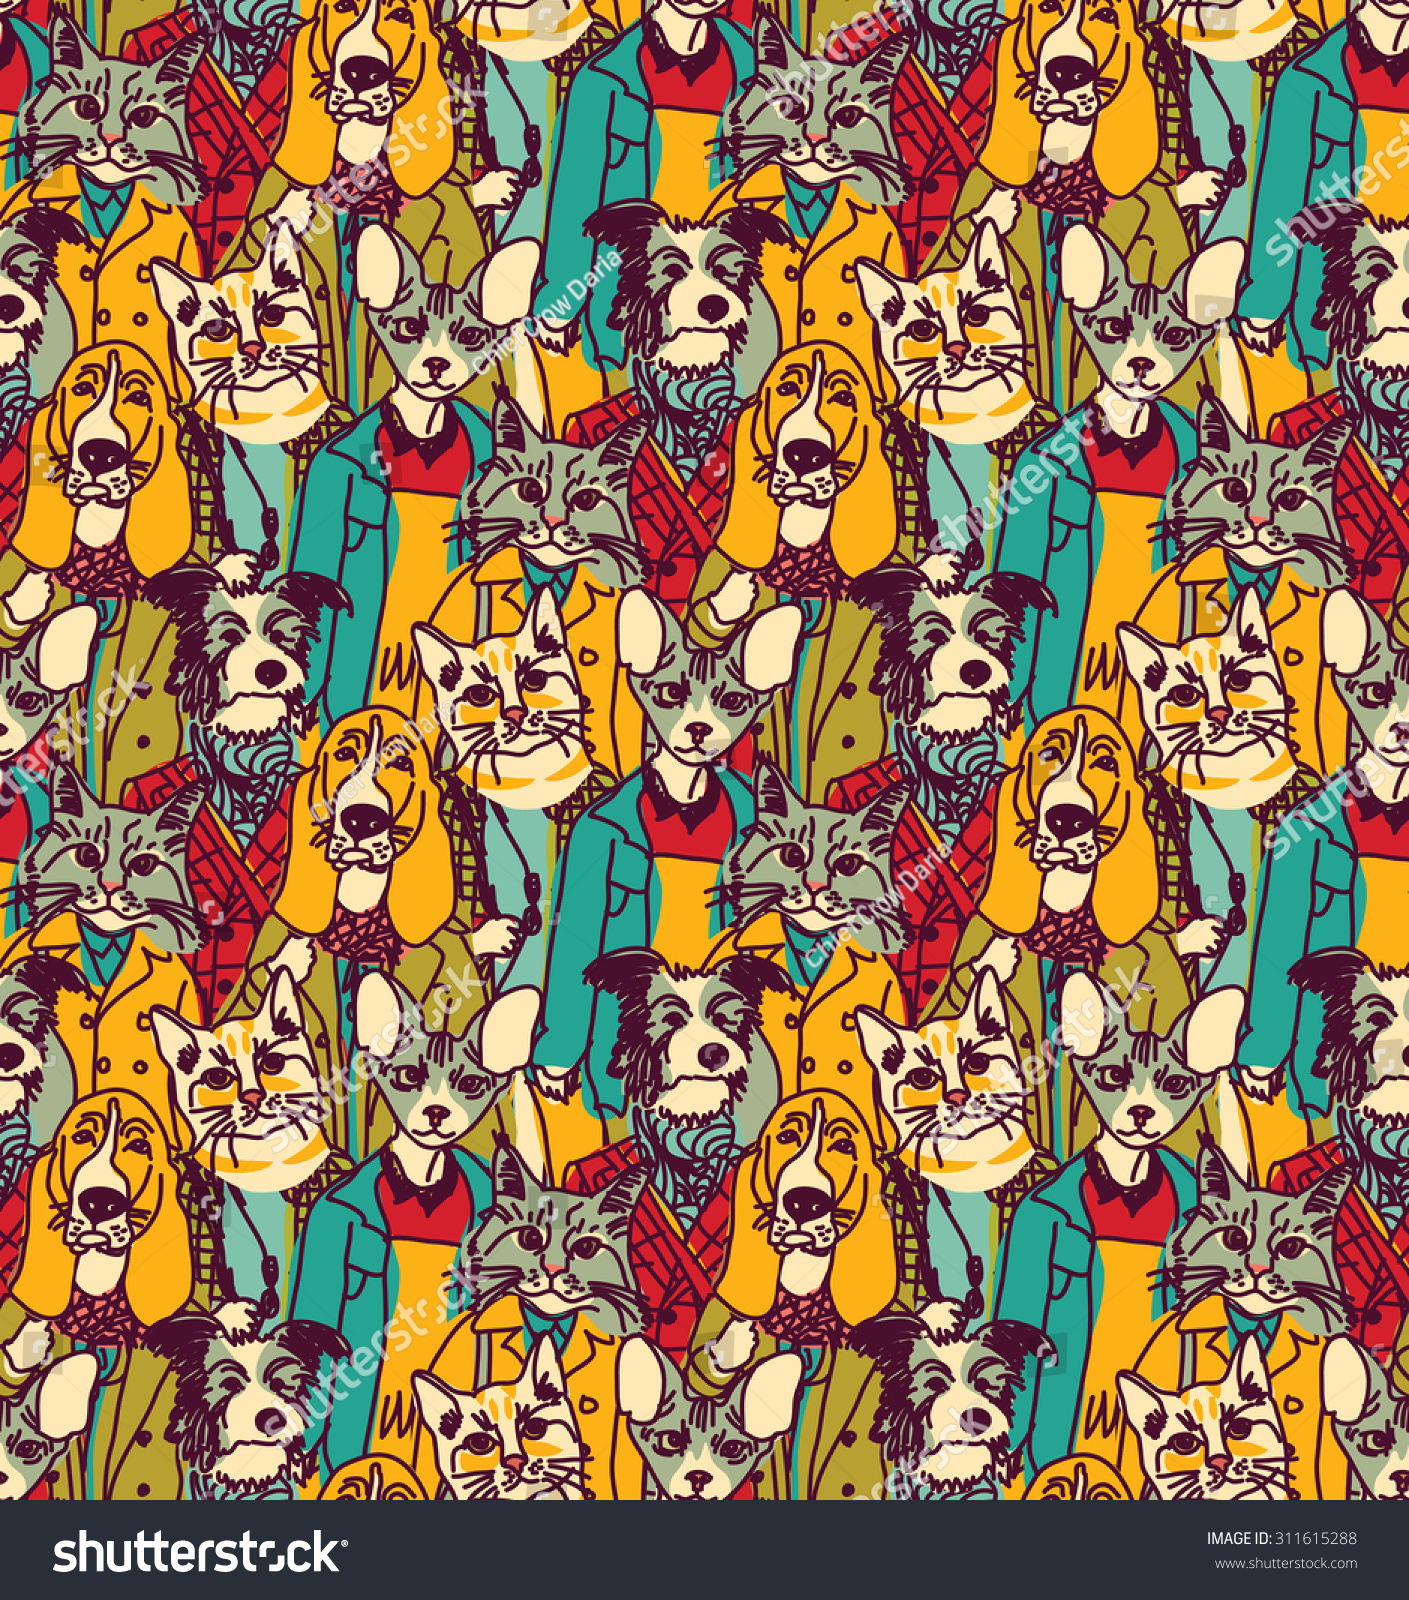 Color cats like - Crowd People Like Cats And Dogs Seamless Pattern Big Group Of Pets Looking Like People